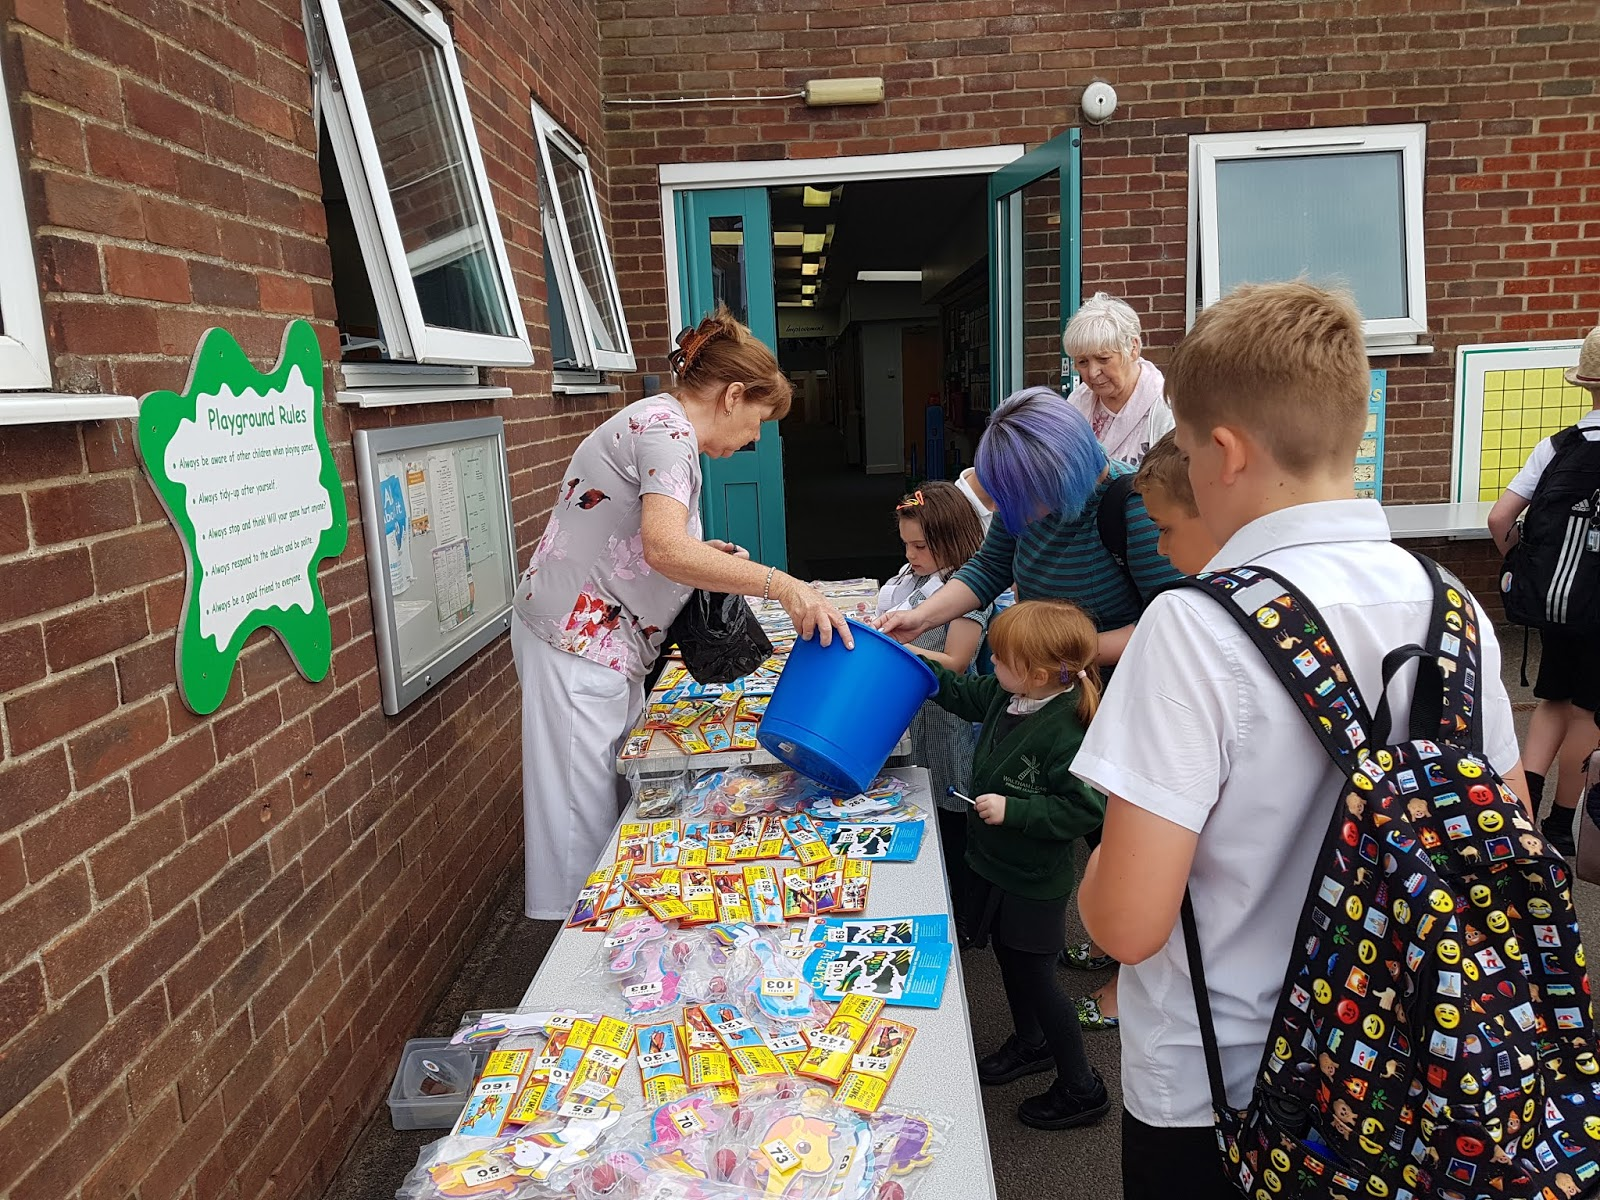 Waltham Leas: Summer Fair